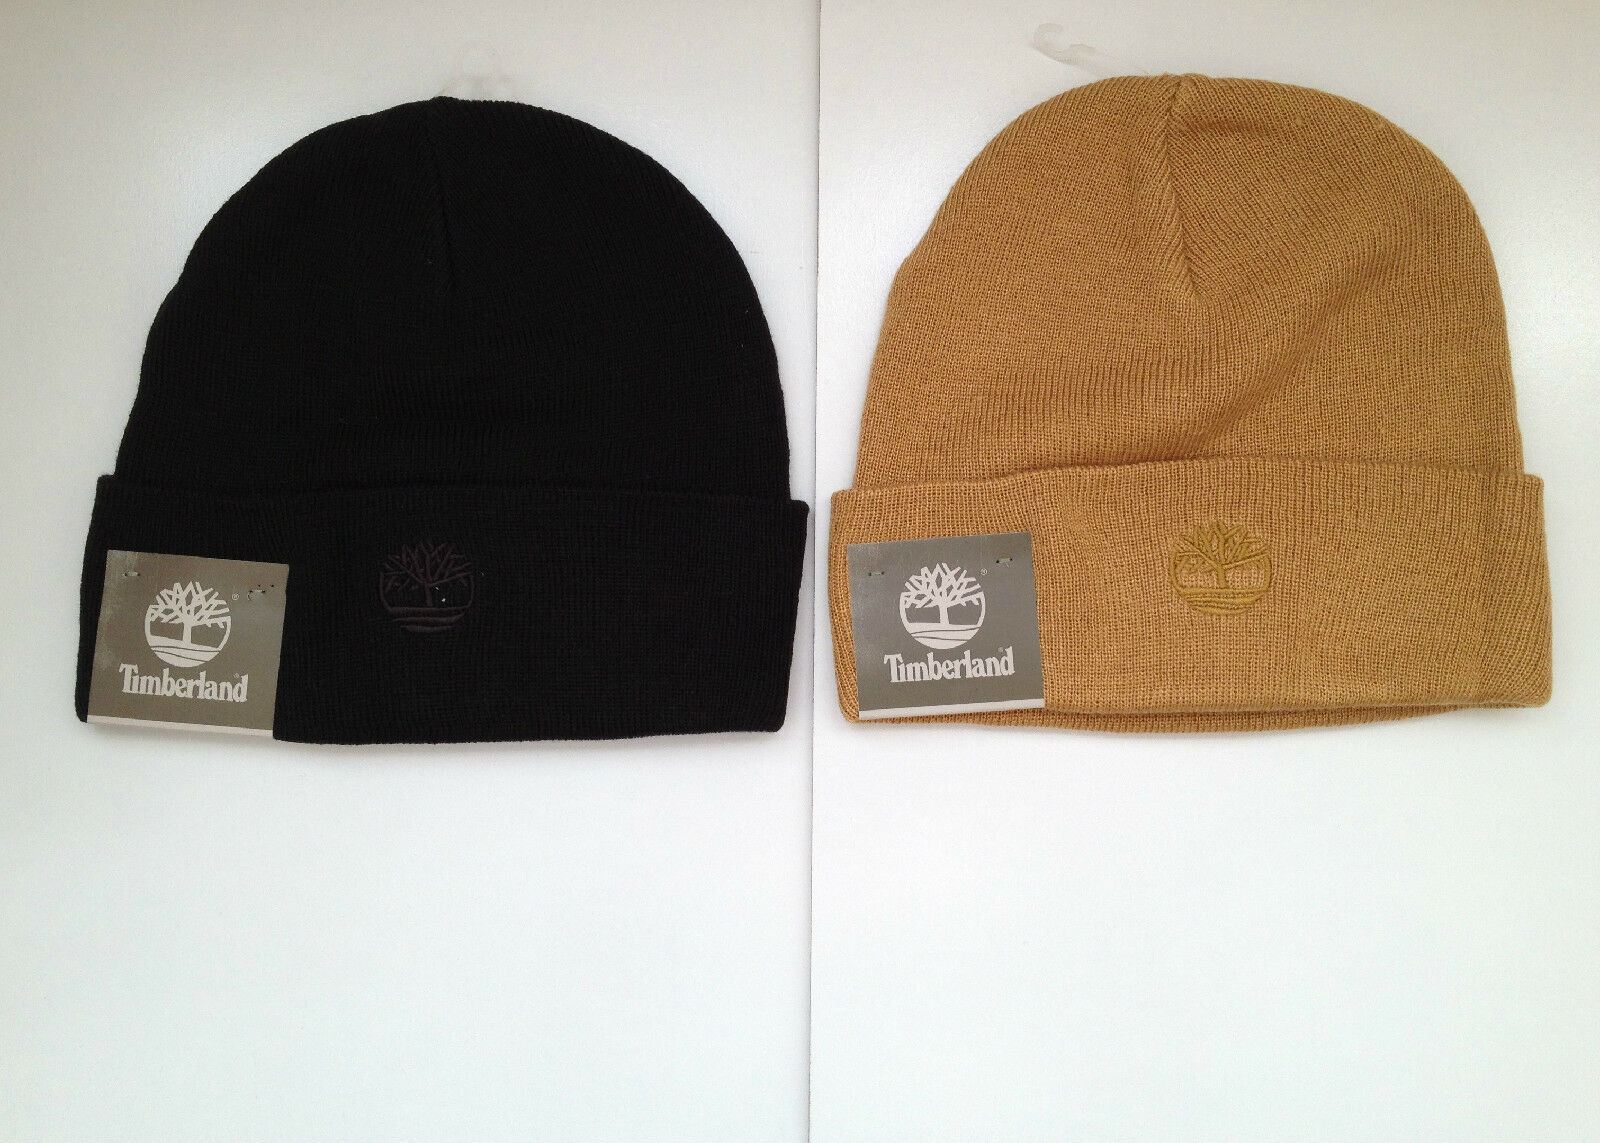 1220a09c72737 New Timberland Men s Knit Beanie Hat 1 of 1FREE Shipping ...